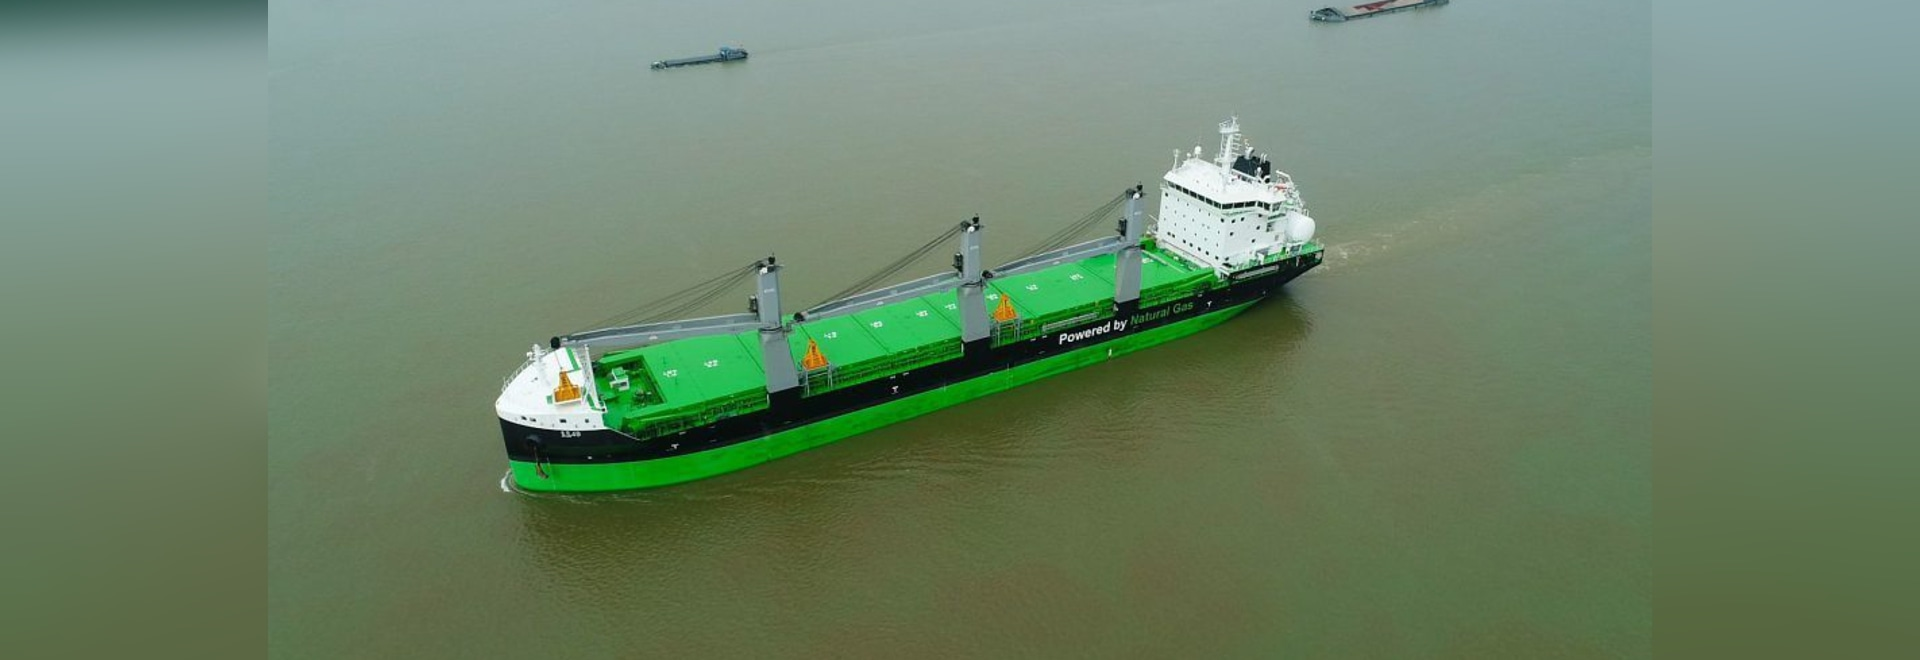 ESL Shipping's Crane Issues on New Vessels Mainly Fixed